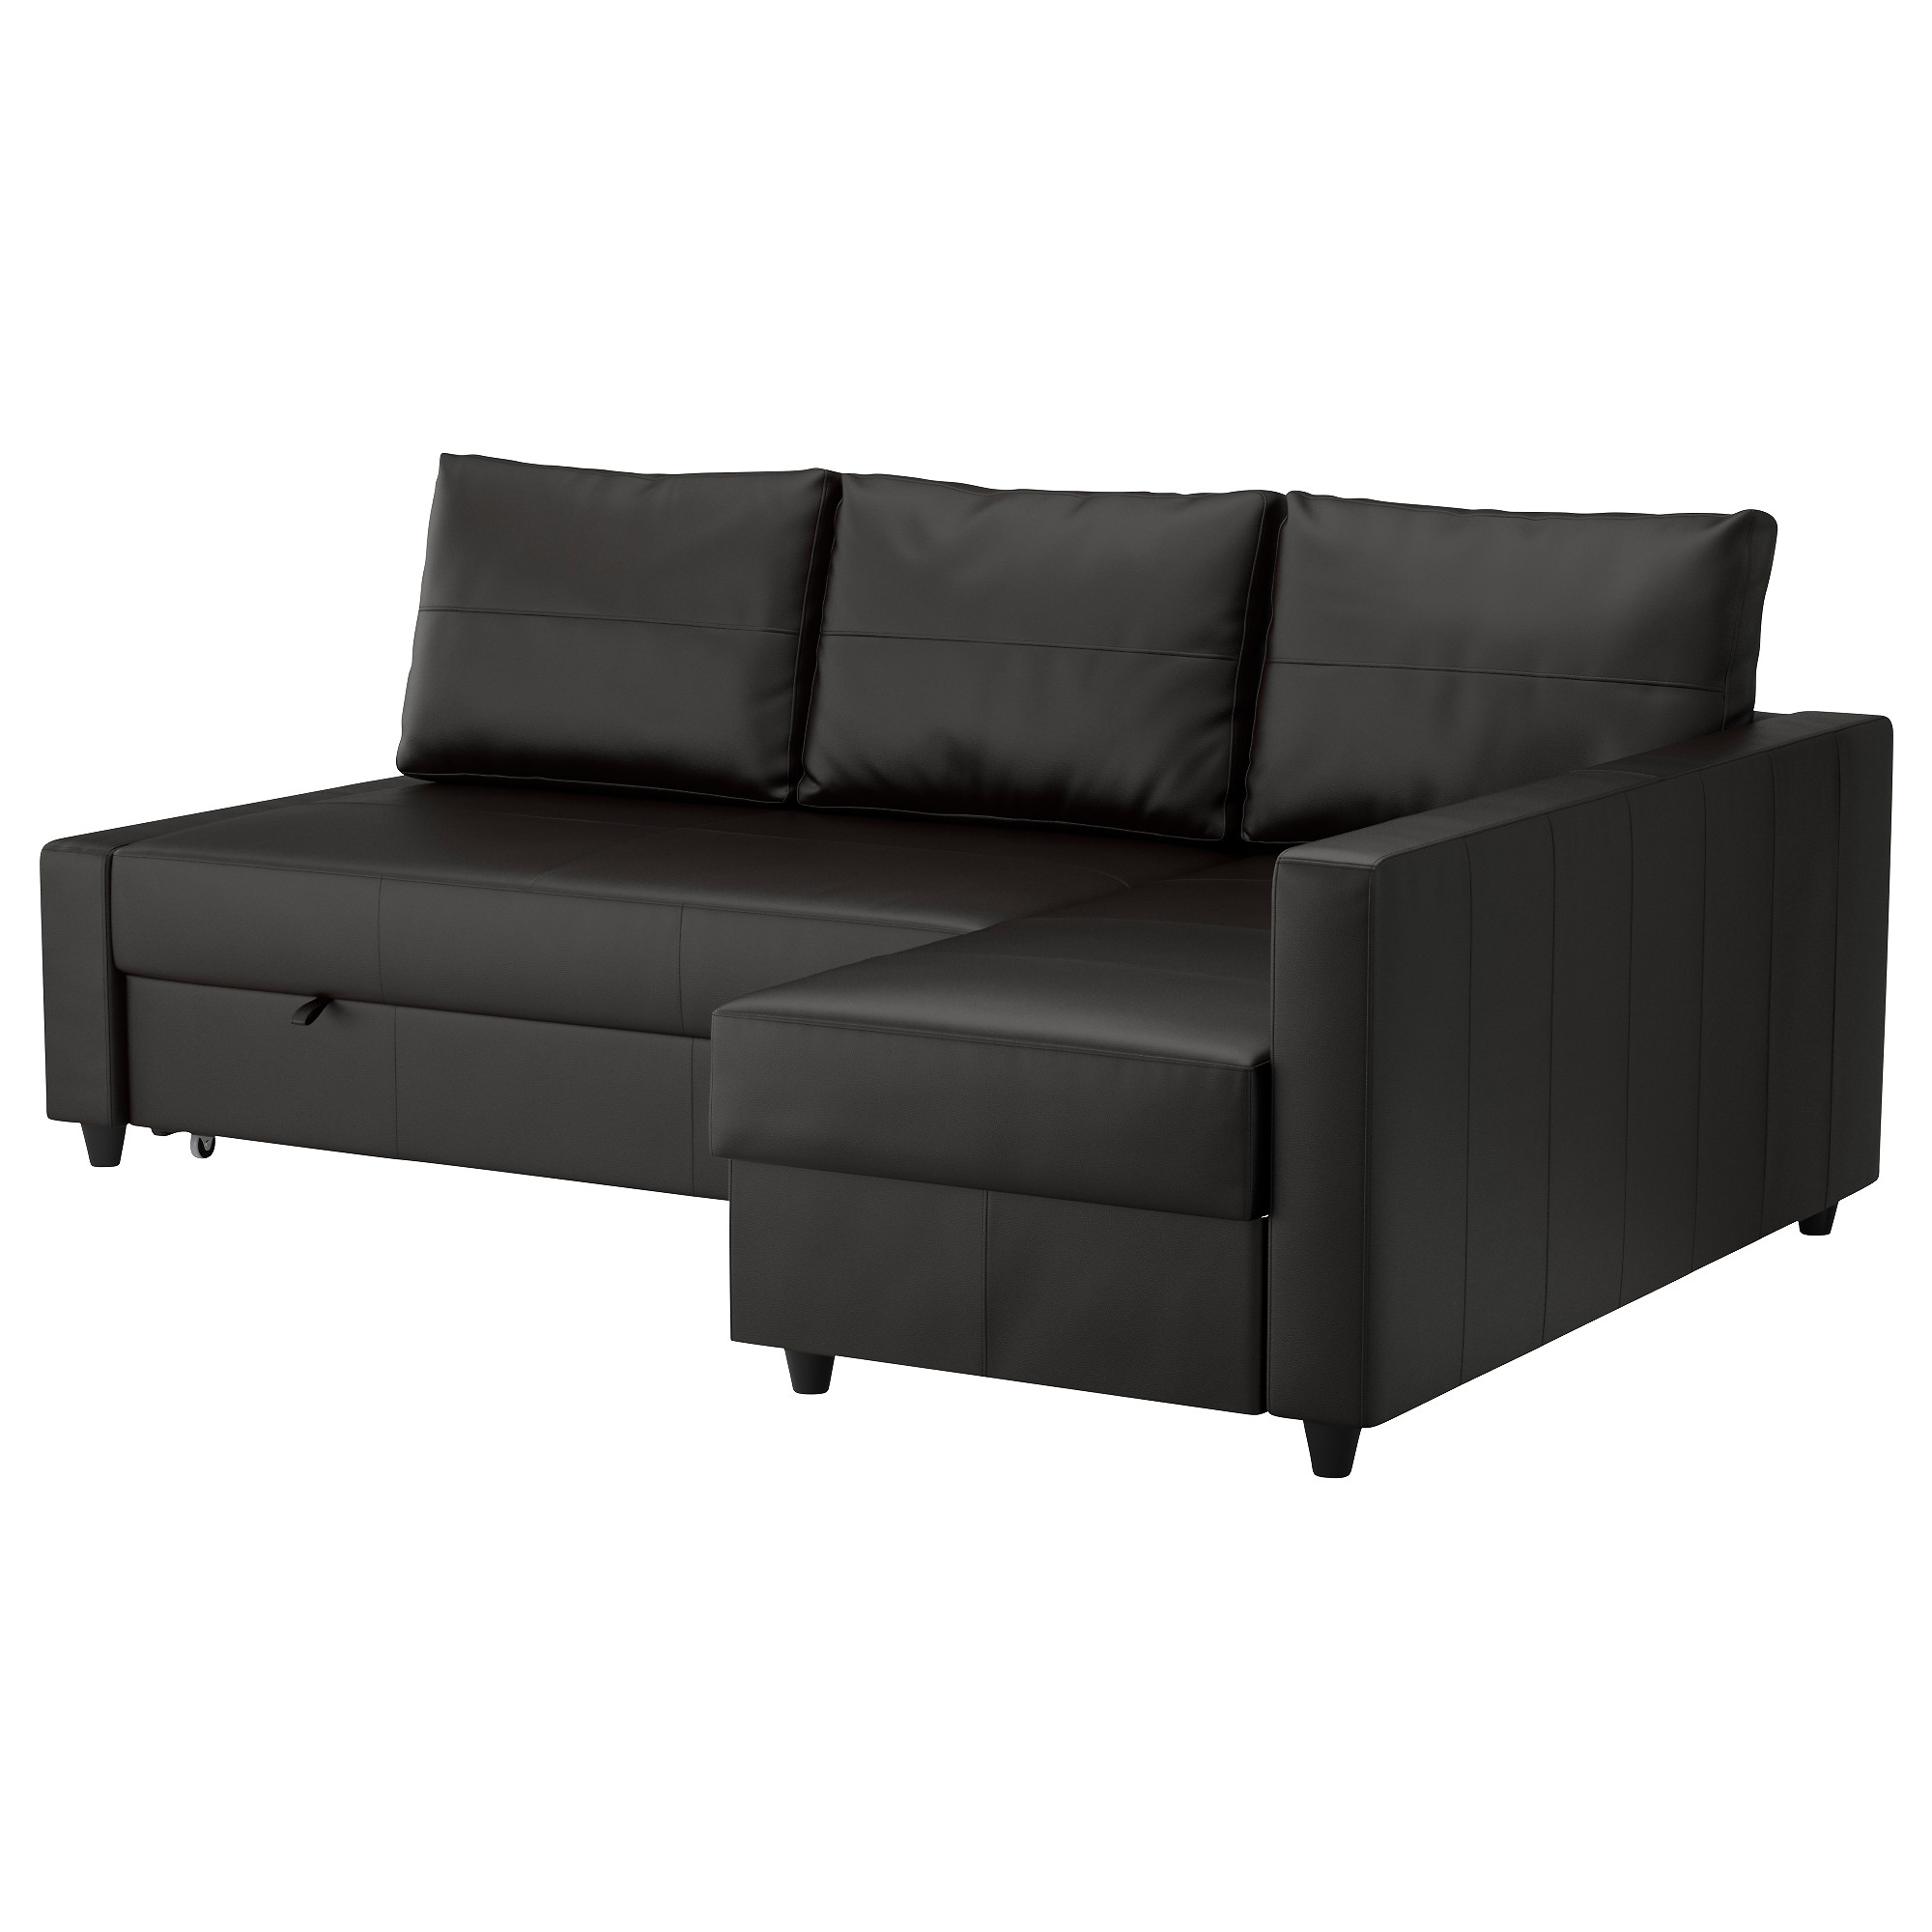 Sleeper Sectional 3 Seat W Storage Friheten Bomstad Black